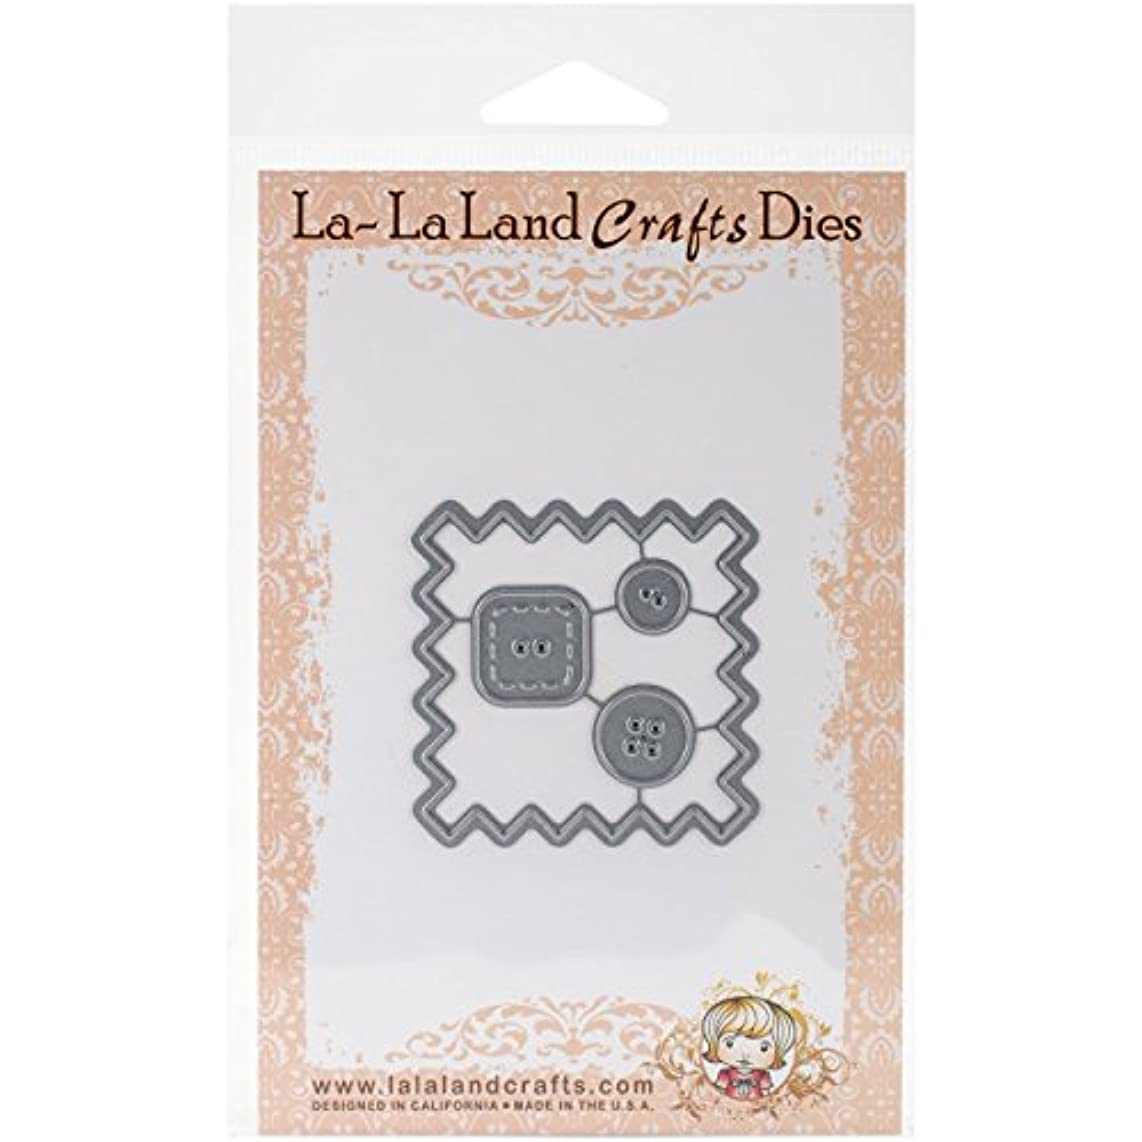 La-La Land Crafts Swatch & Buttons